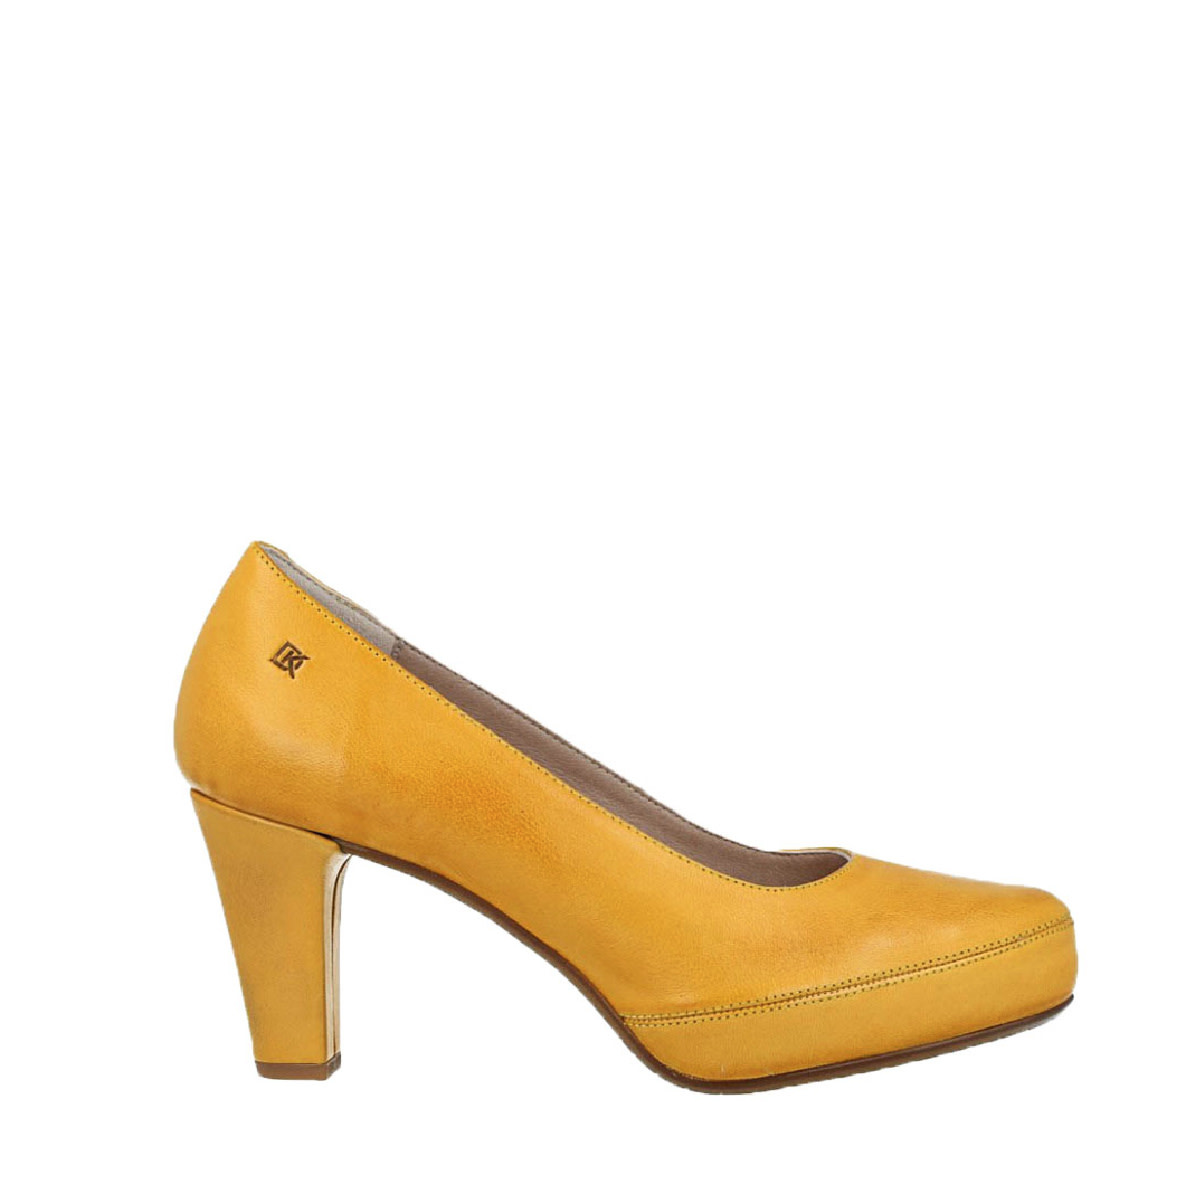 Dorking Dorking D5794 Heel Yellow